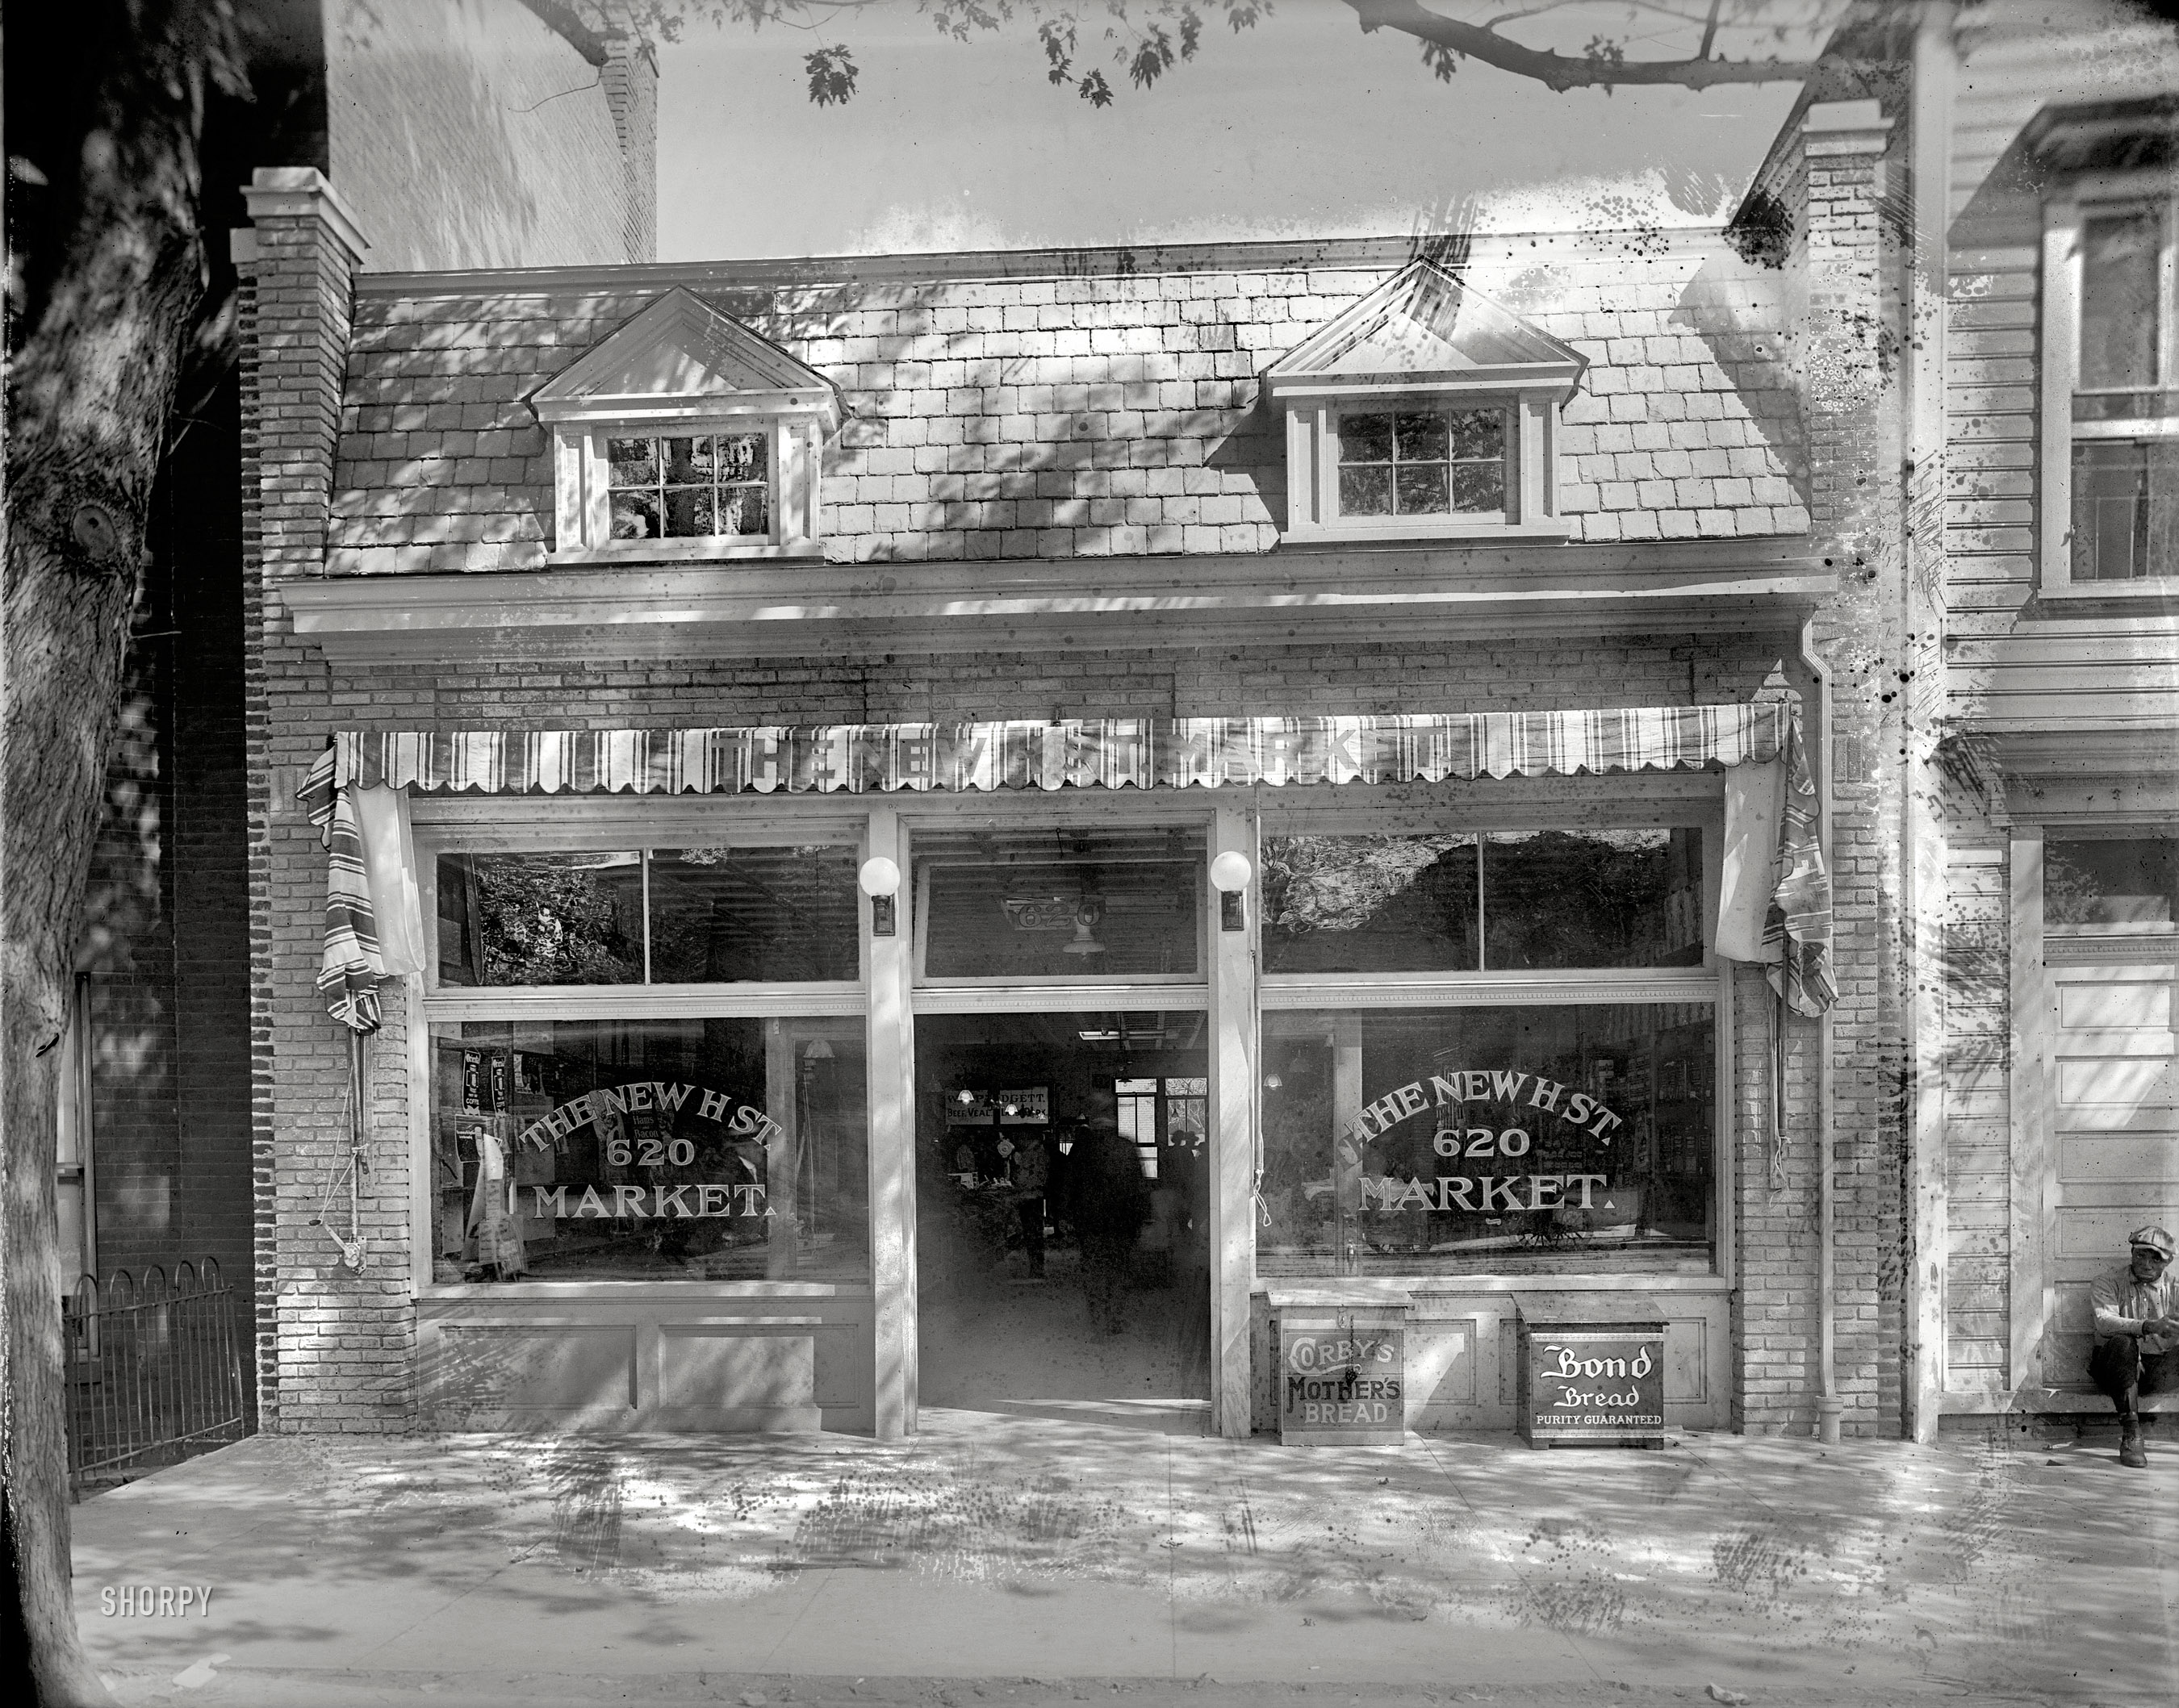 Shorpy historic picture archive h street market 1920 for Furniture u street dc